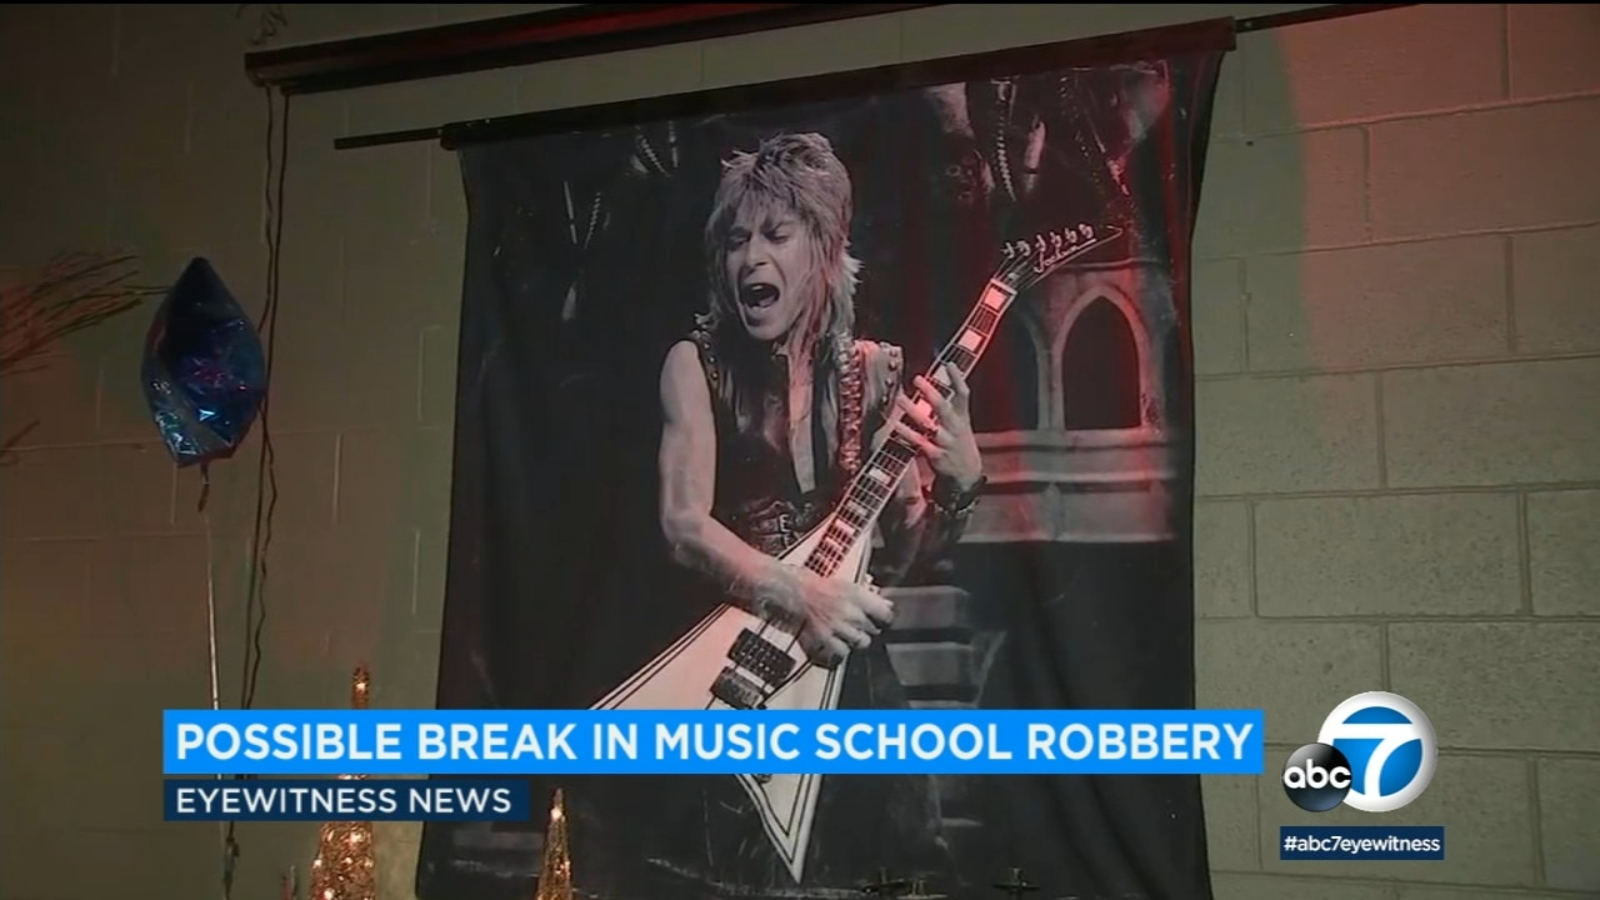 Randy Rhoads theft: Items belonging to Ozzy Osbourne's late guitarist recovered after burglary